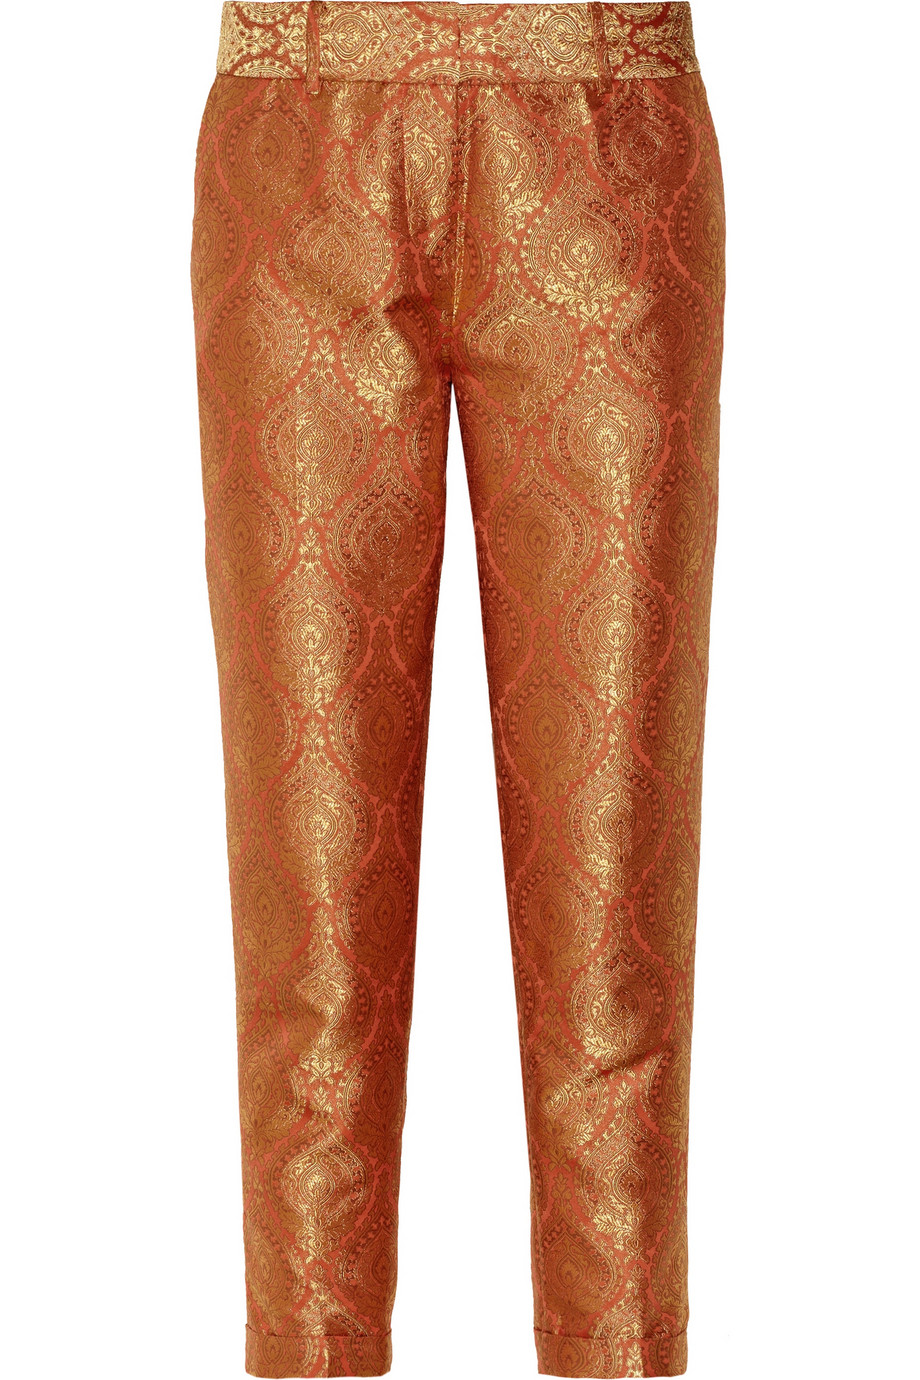 Anselm jacquard pants | Elizabeth and James | THE OUTNET